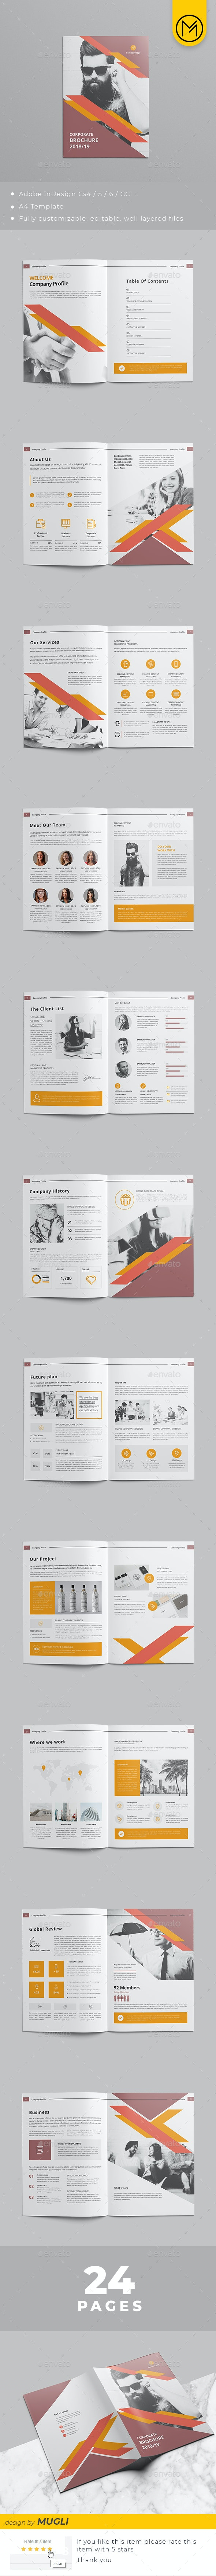 Corporate Brochure Template - Corporate Brochures